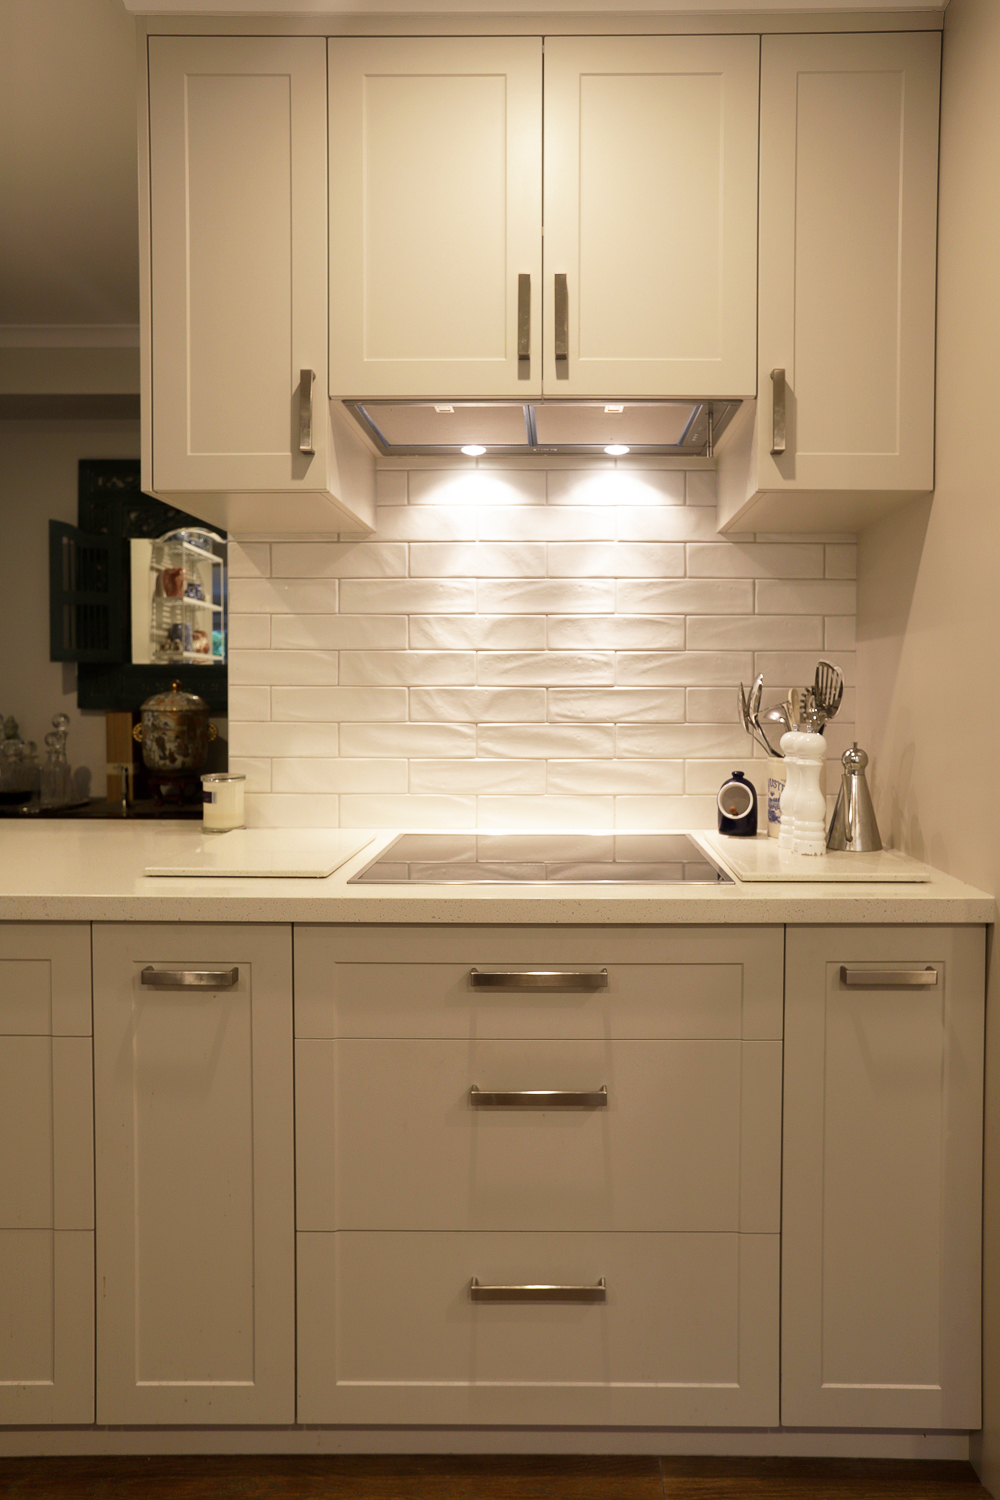 Concealed rangehood with tiled splashback